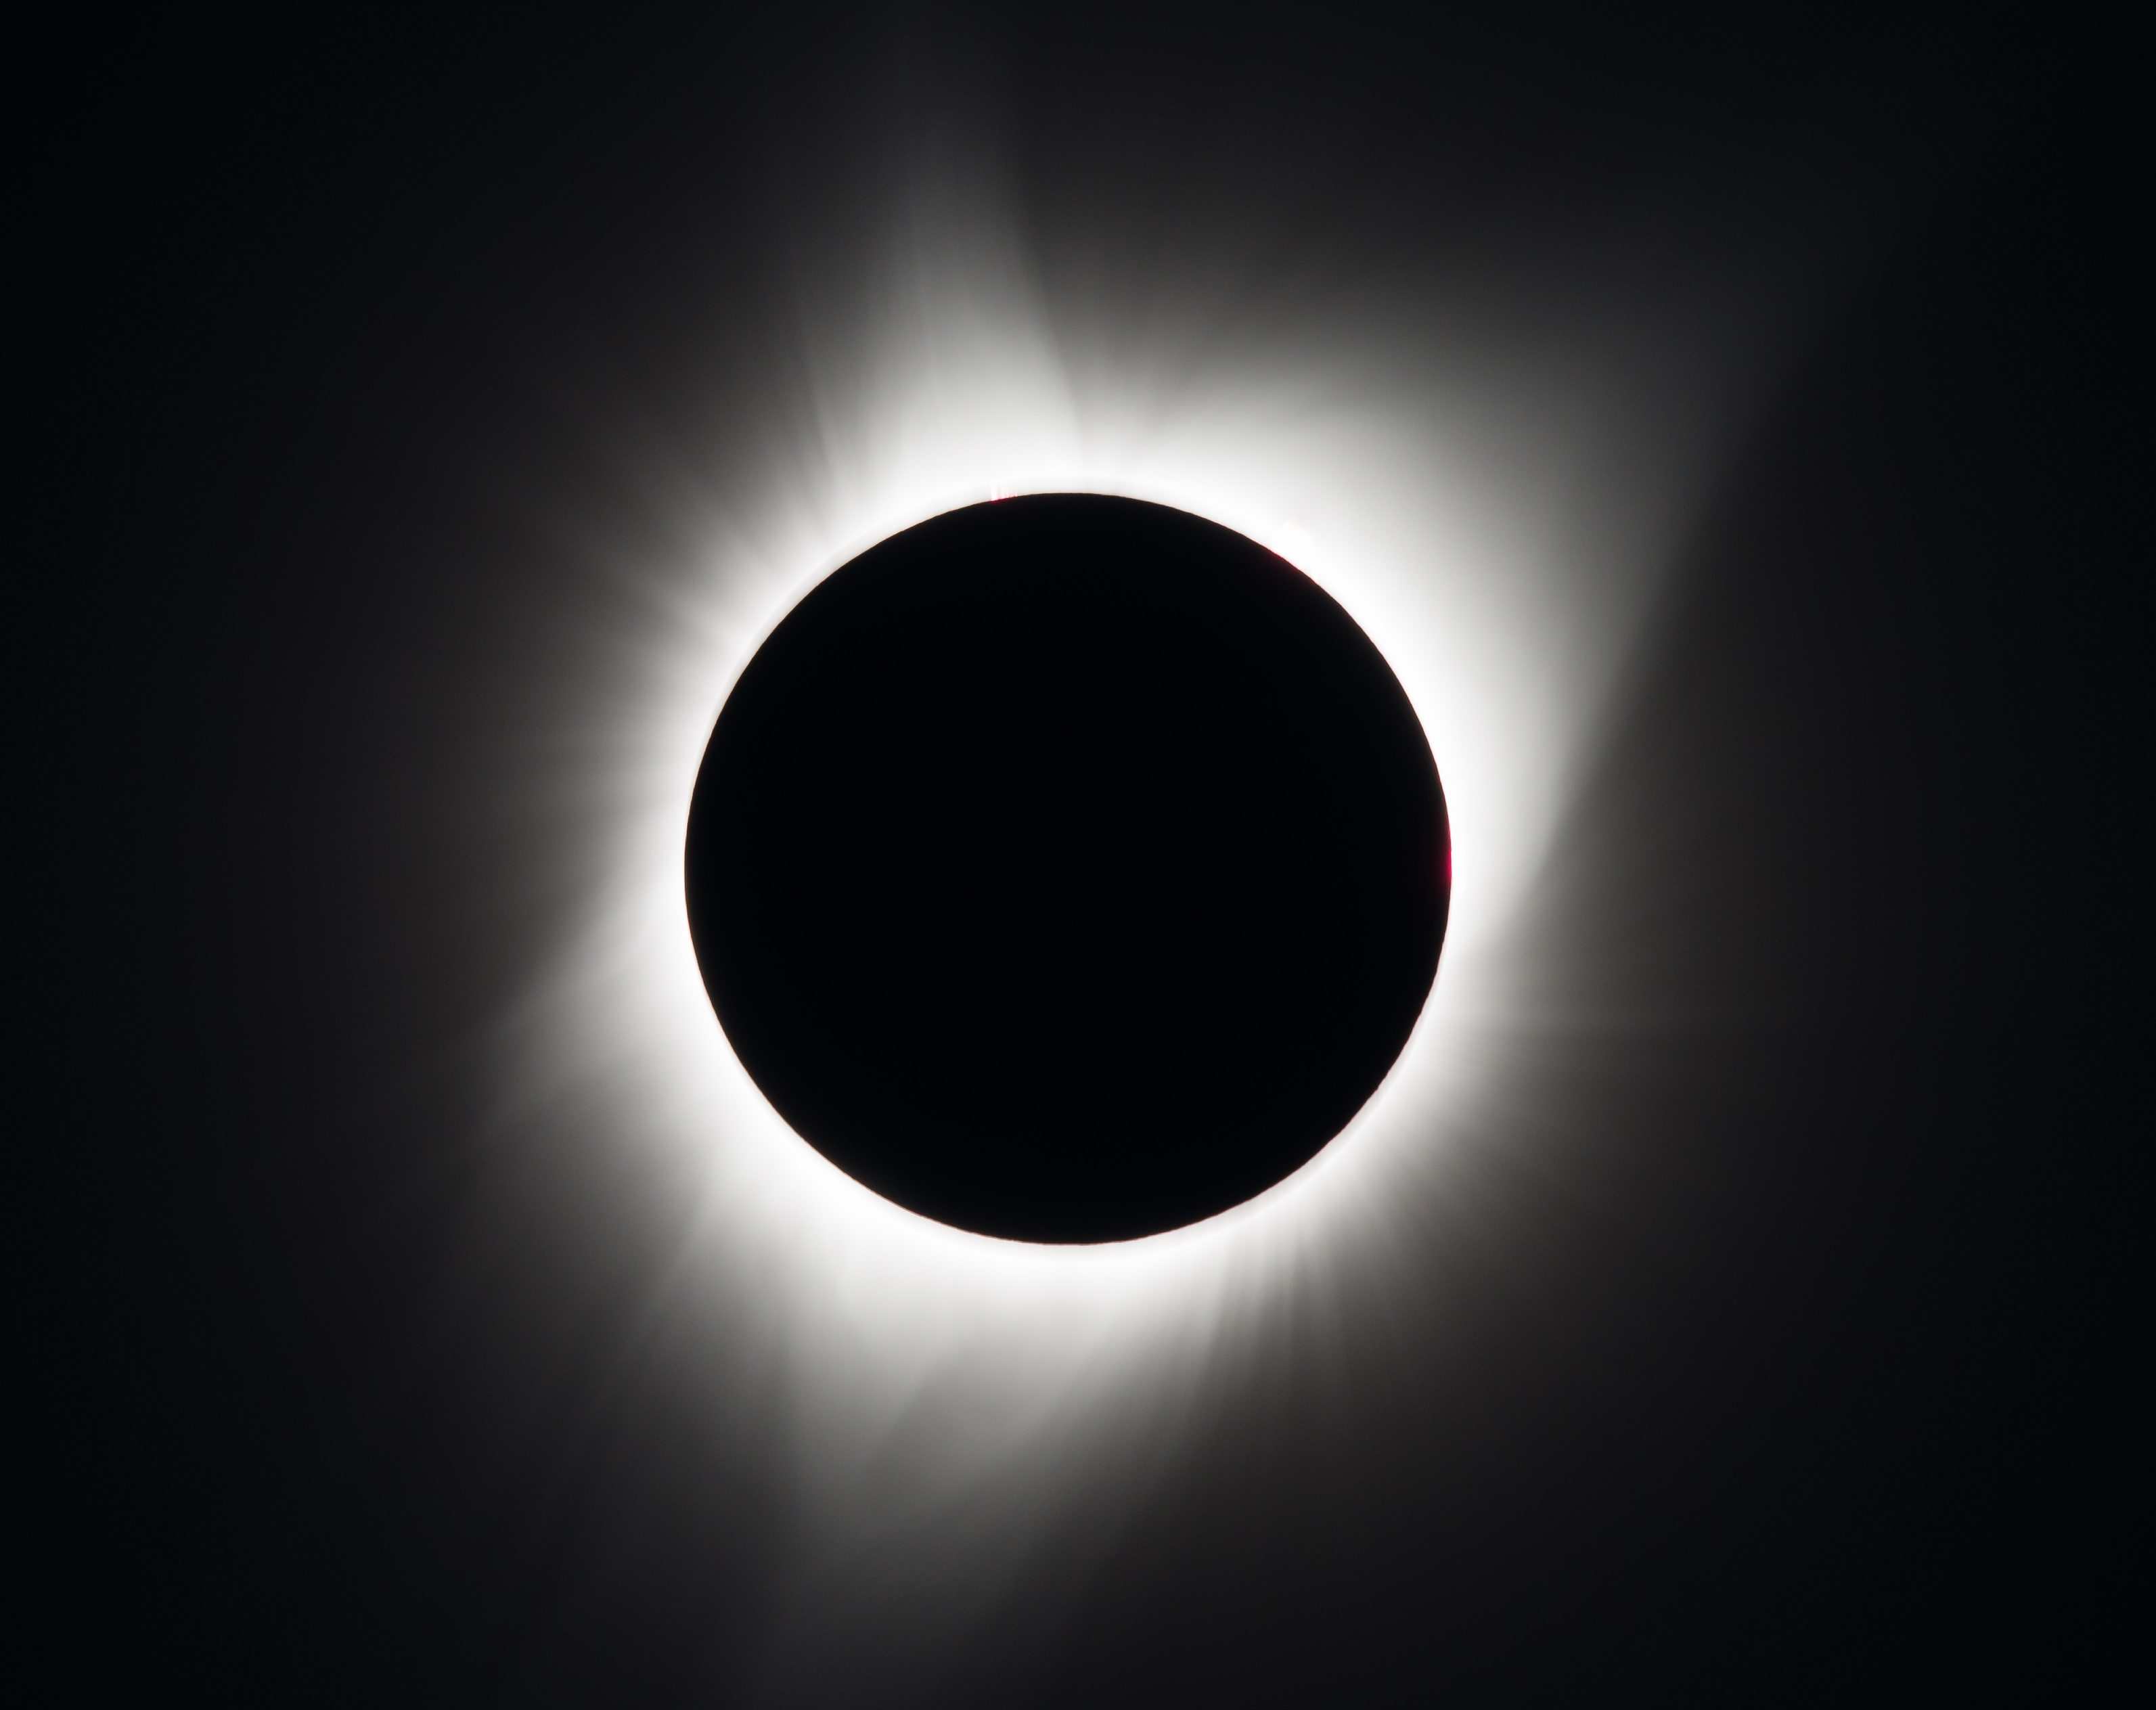 © NASA/Aubrey Gemignani - https://www.nasa.gov/eclipsephotos